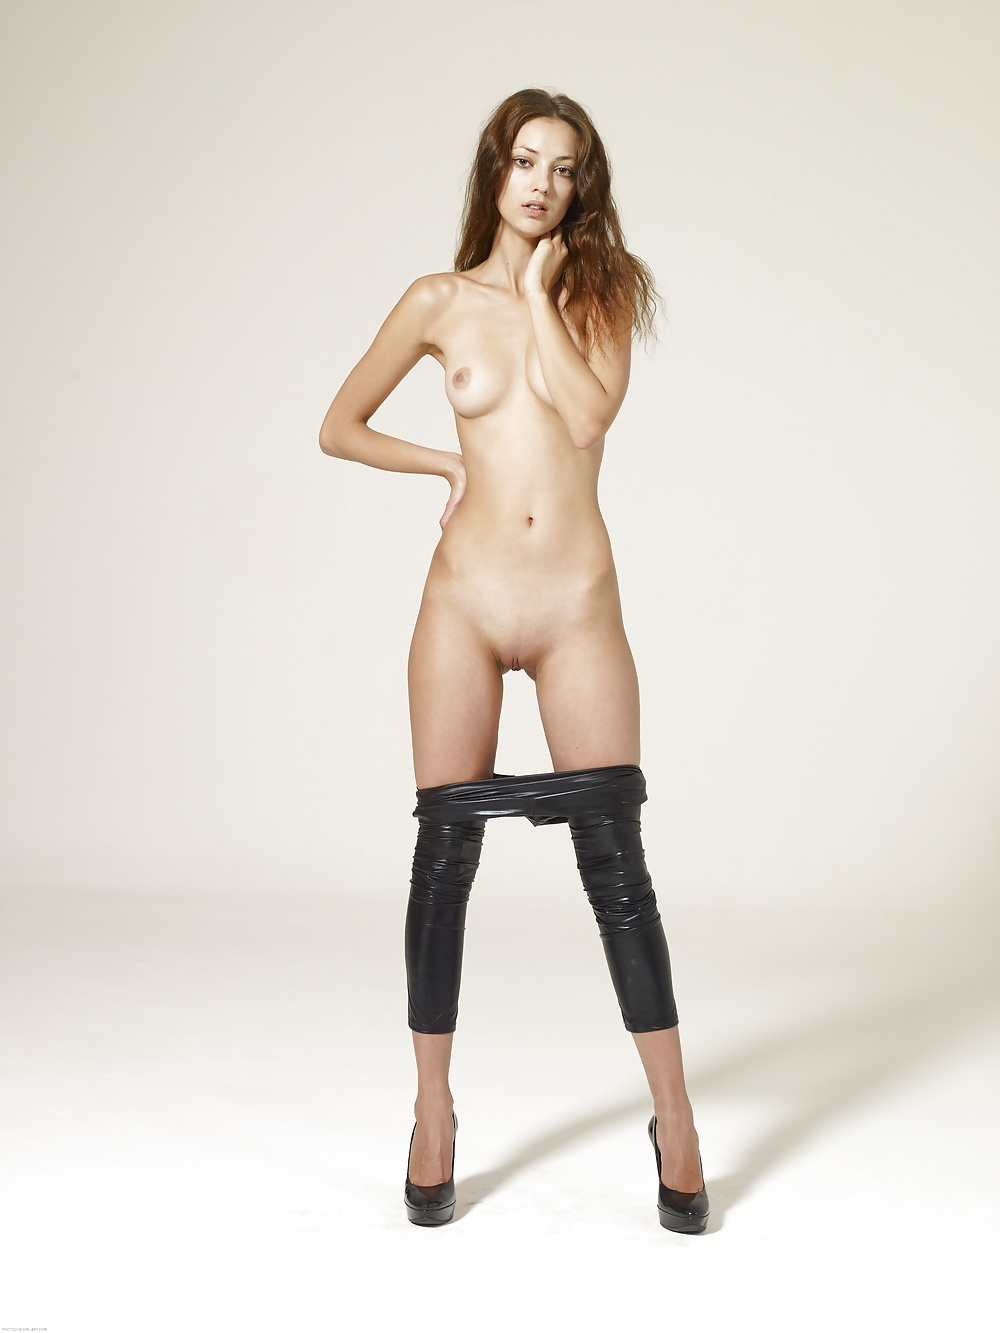 Odette annable nude in banshee the thunder man odette annable